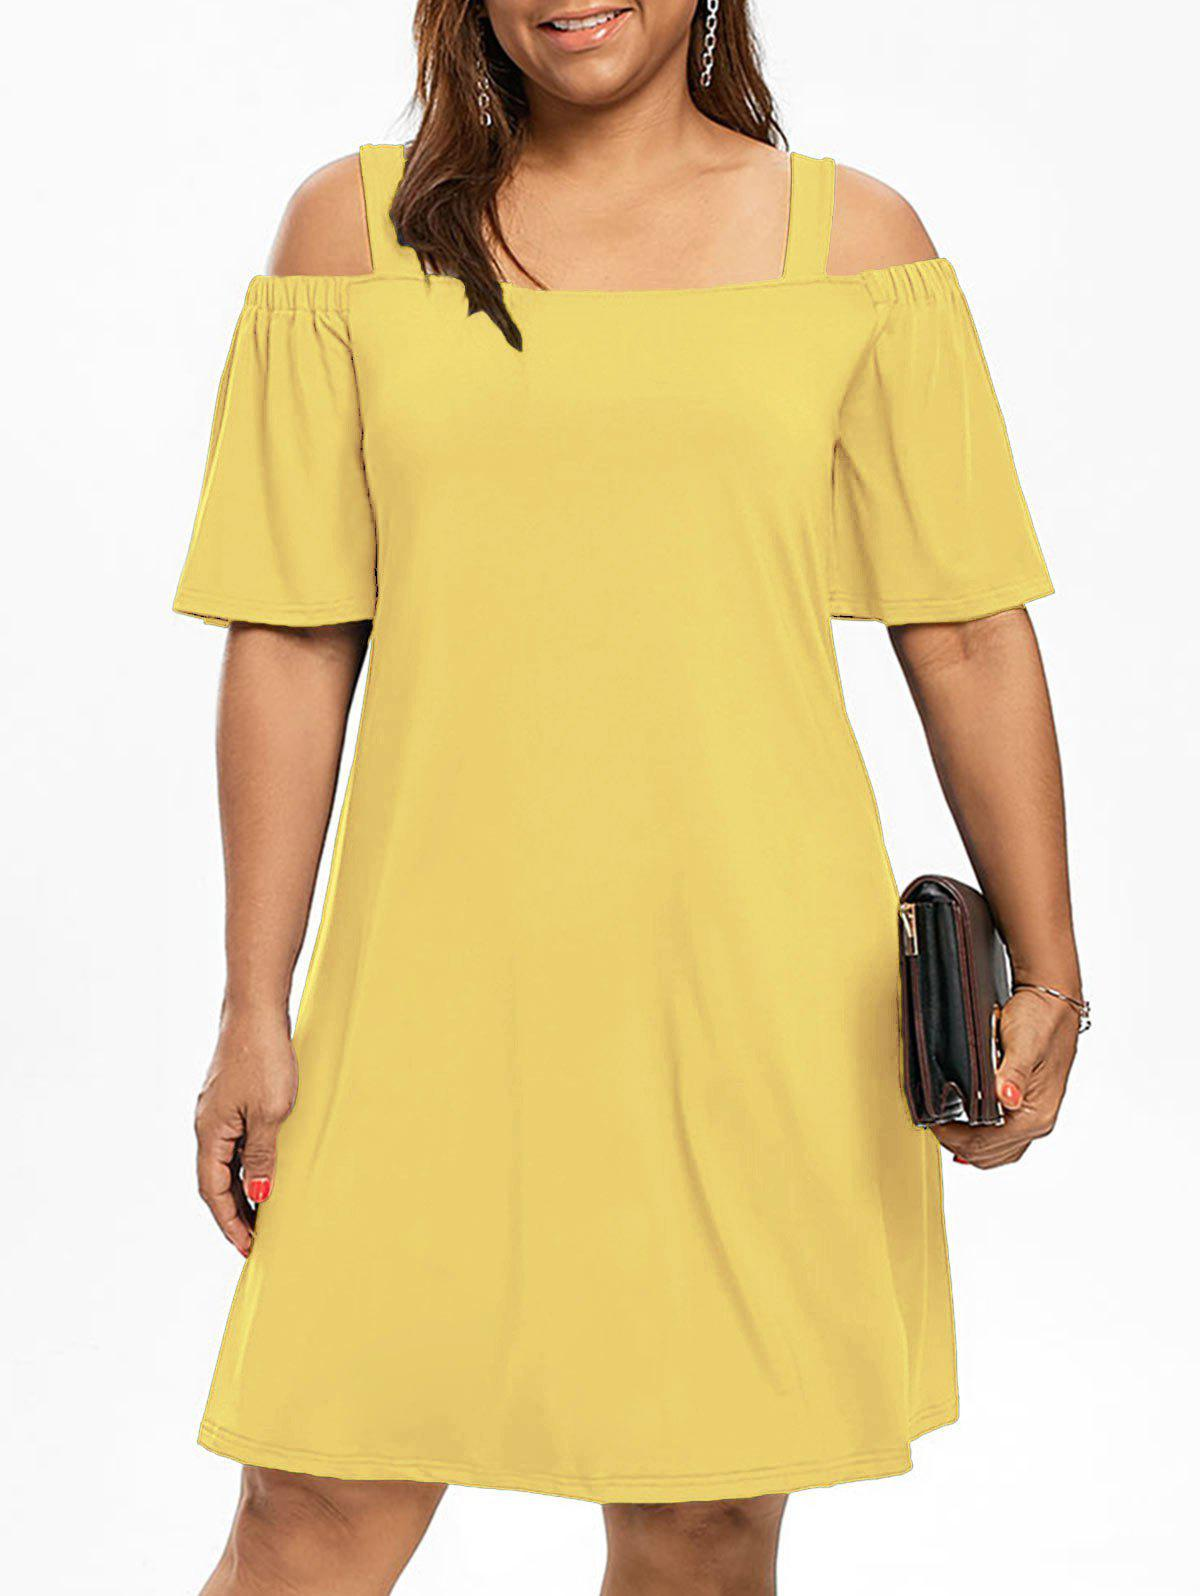 Cold Shoulder Half Sleeve Plus Size DressWOMEN<br><br>Size: 2XL; Color: YELLOW; Style: Brief; Material: Polyester,Spandex; Silhouette: A-Line; Dresses Length: Knee-Length; Neckline: Square Collar; Sleeve Type: Flare Sleeve; Sleeve Length: Half Sleeves; Waist: Natural; Pattern Type: Solid Color; Elasticity: Elastic; With Belt: No; Season: Fall,Spring; Weight: 0.3200kg; Package Contents: 1 x Dress;